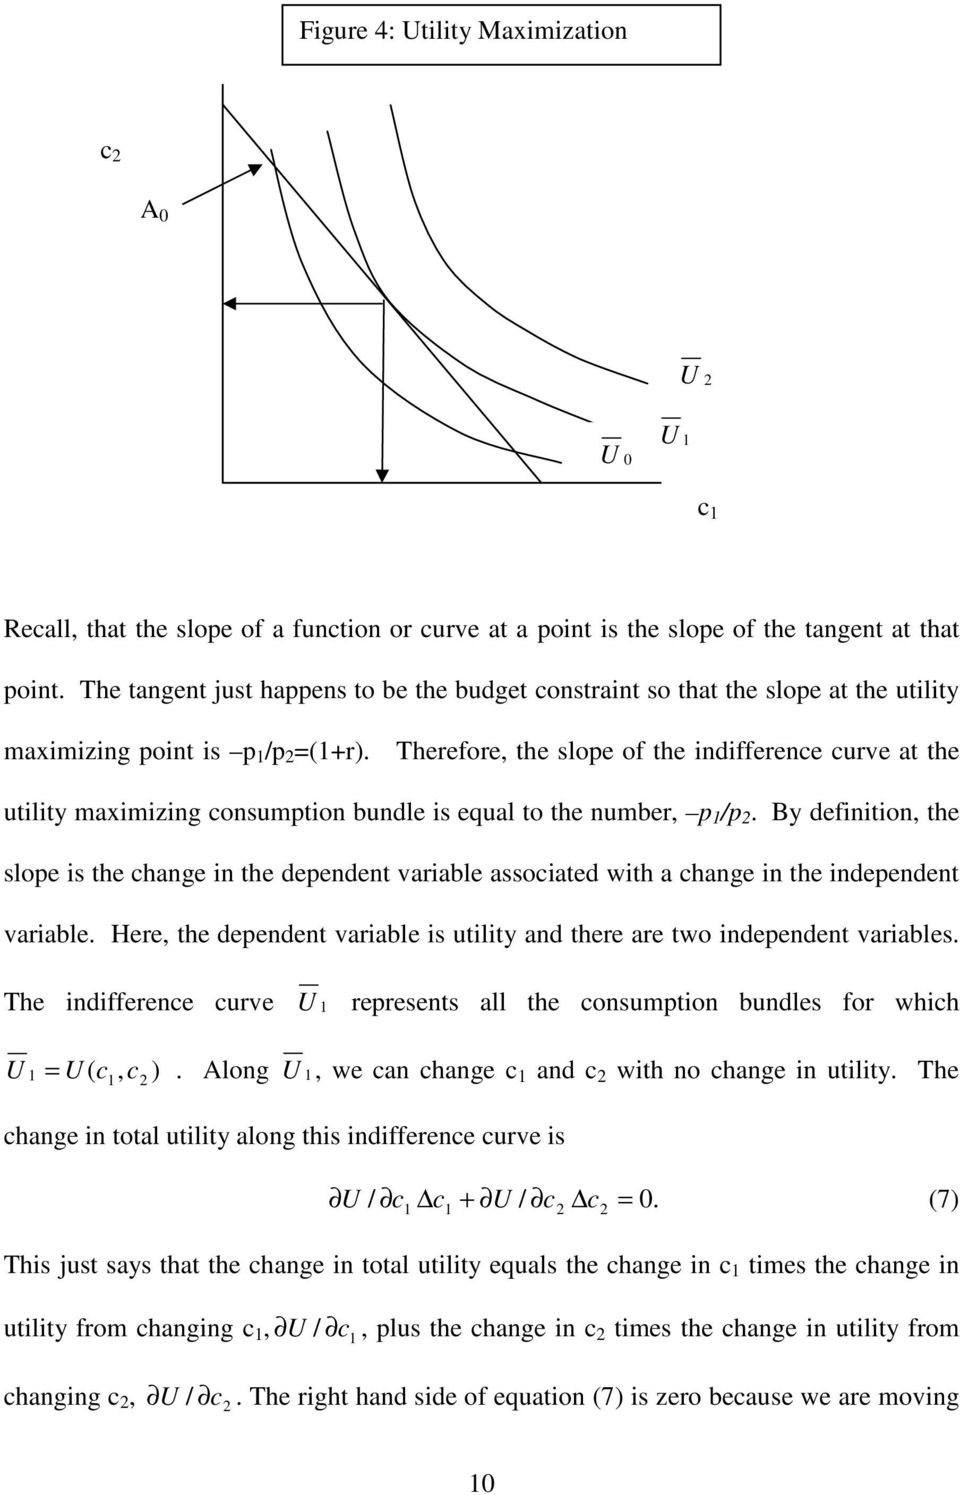 Theefoe, the slope of the indiffeence cuve at the utility maximizing consumption bundle is equal to the numbe, p /p.